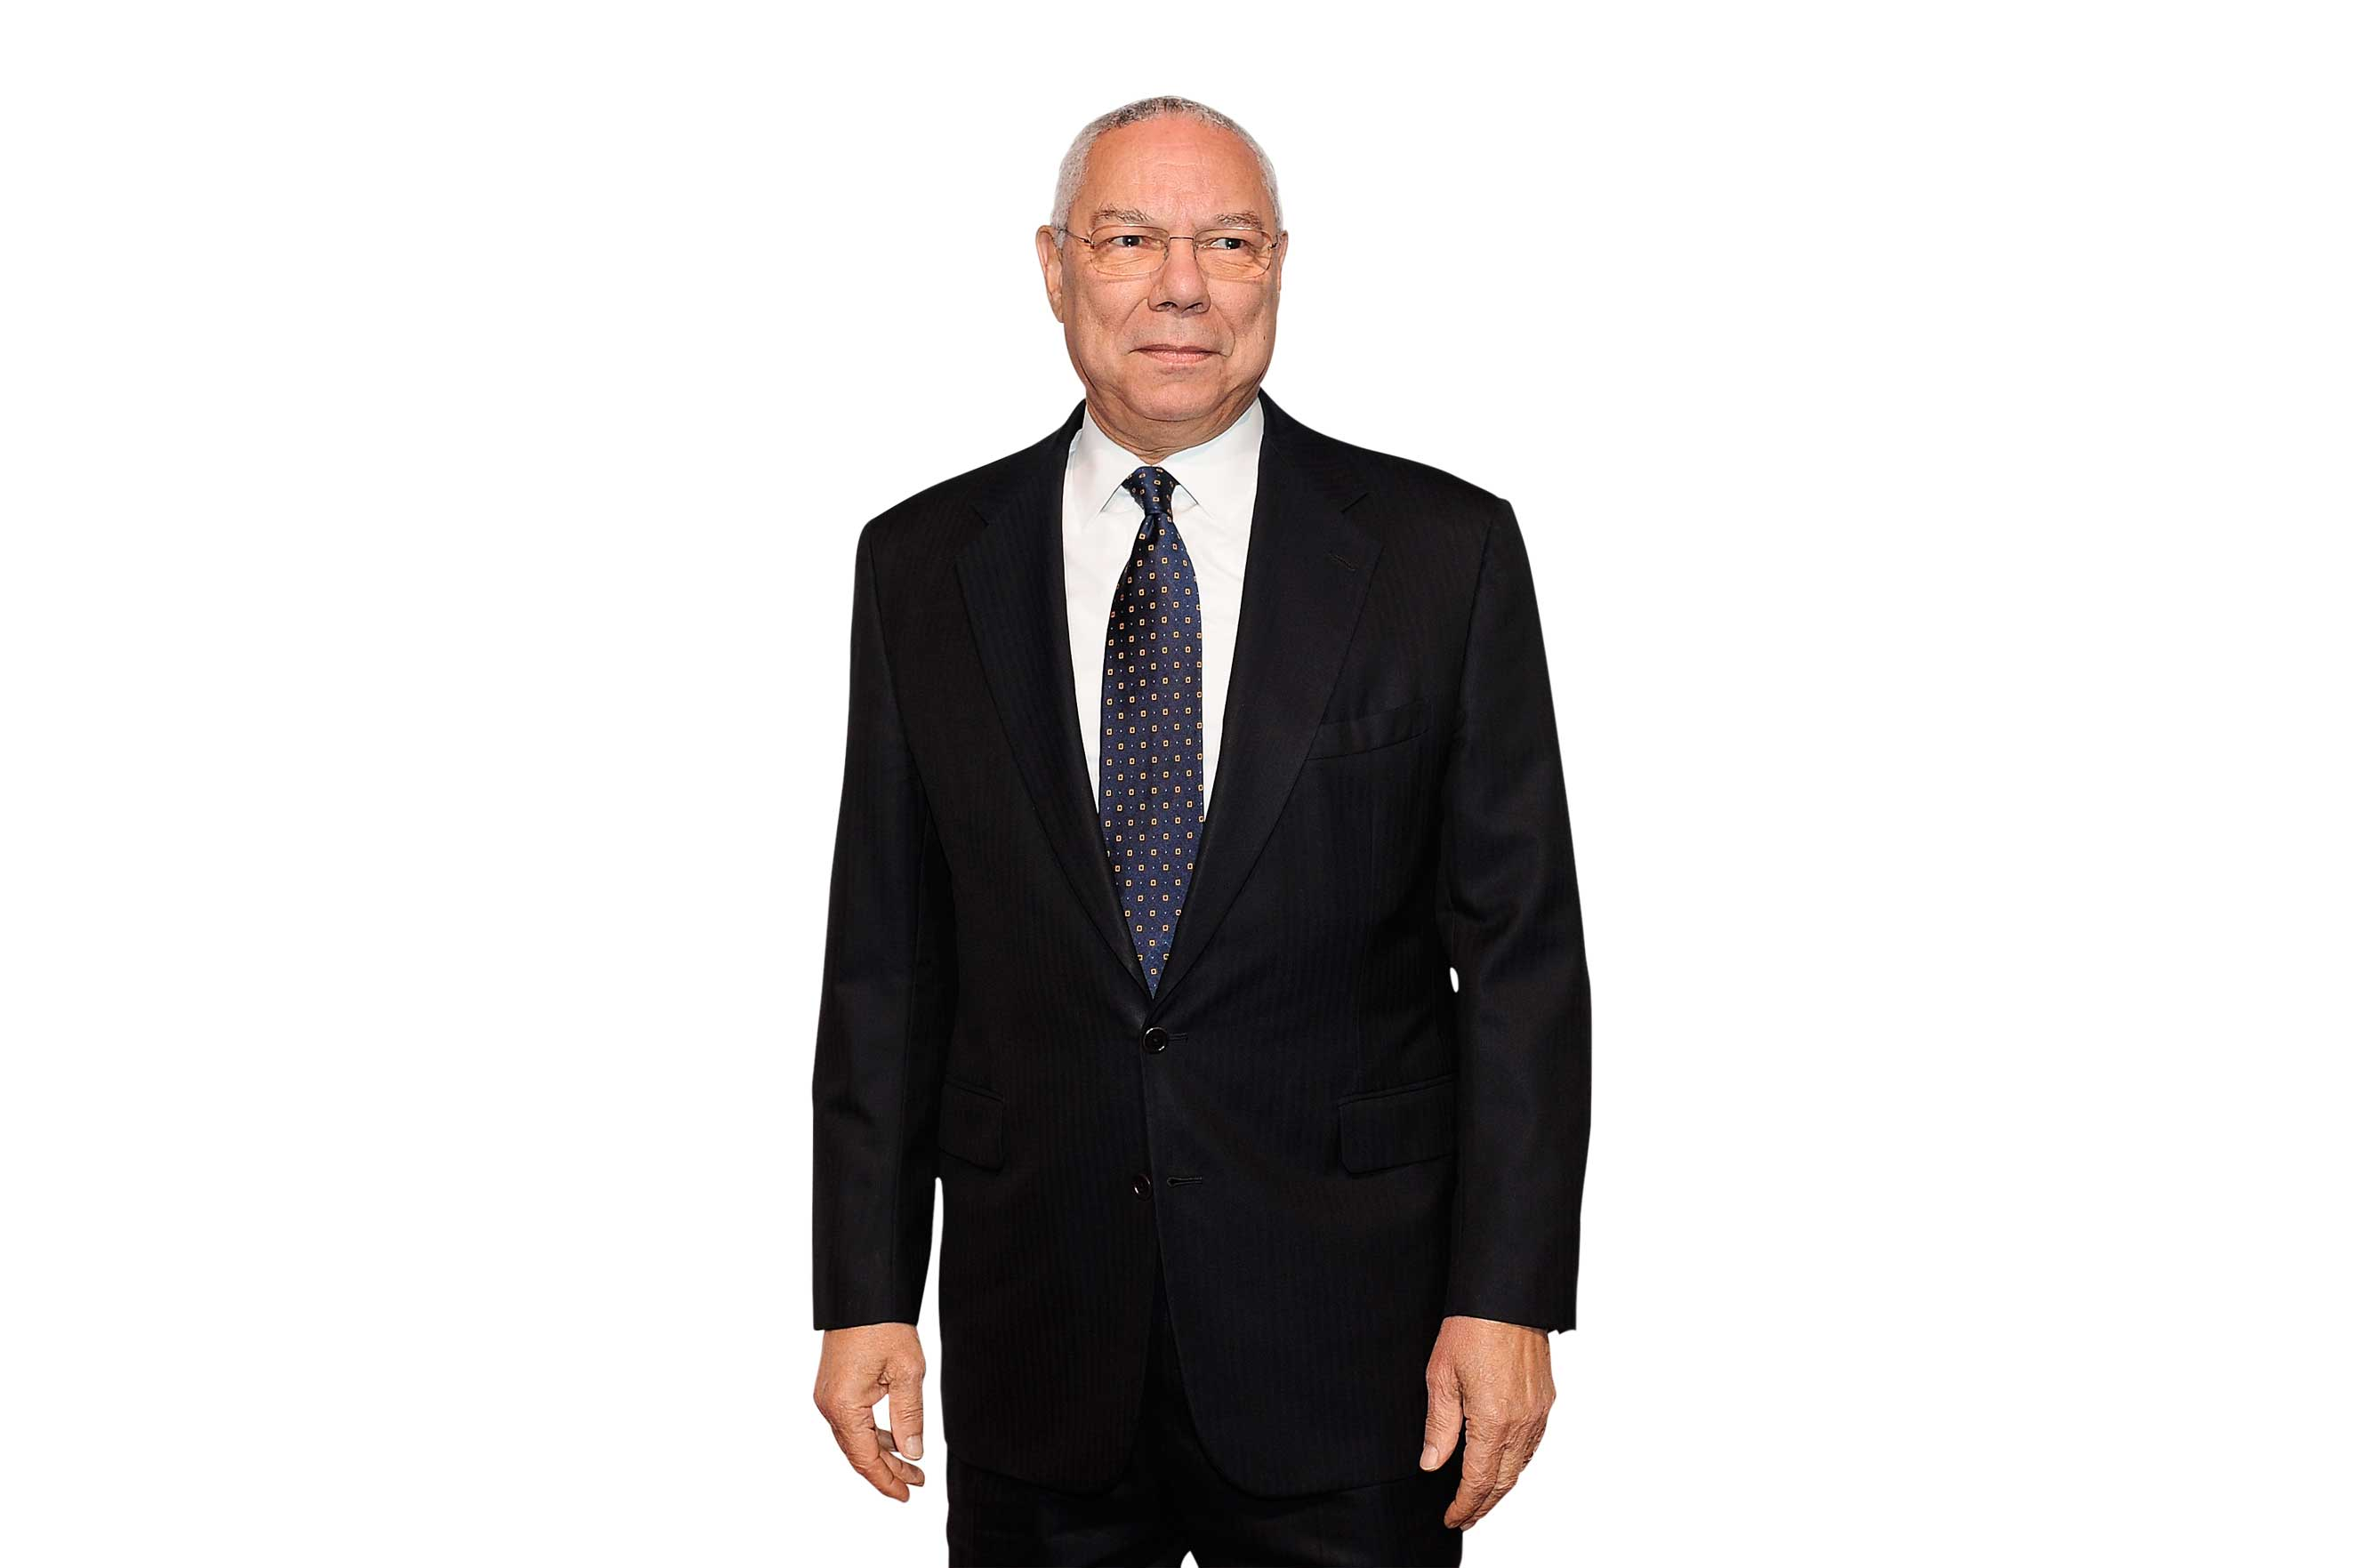 General Colin Powell at The John F. Kennedy Center for Performing Arts on November 20, 2013 in Washington, DC.